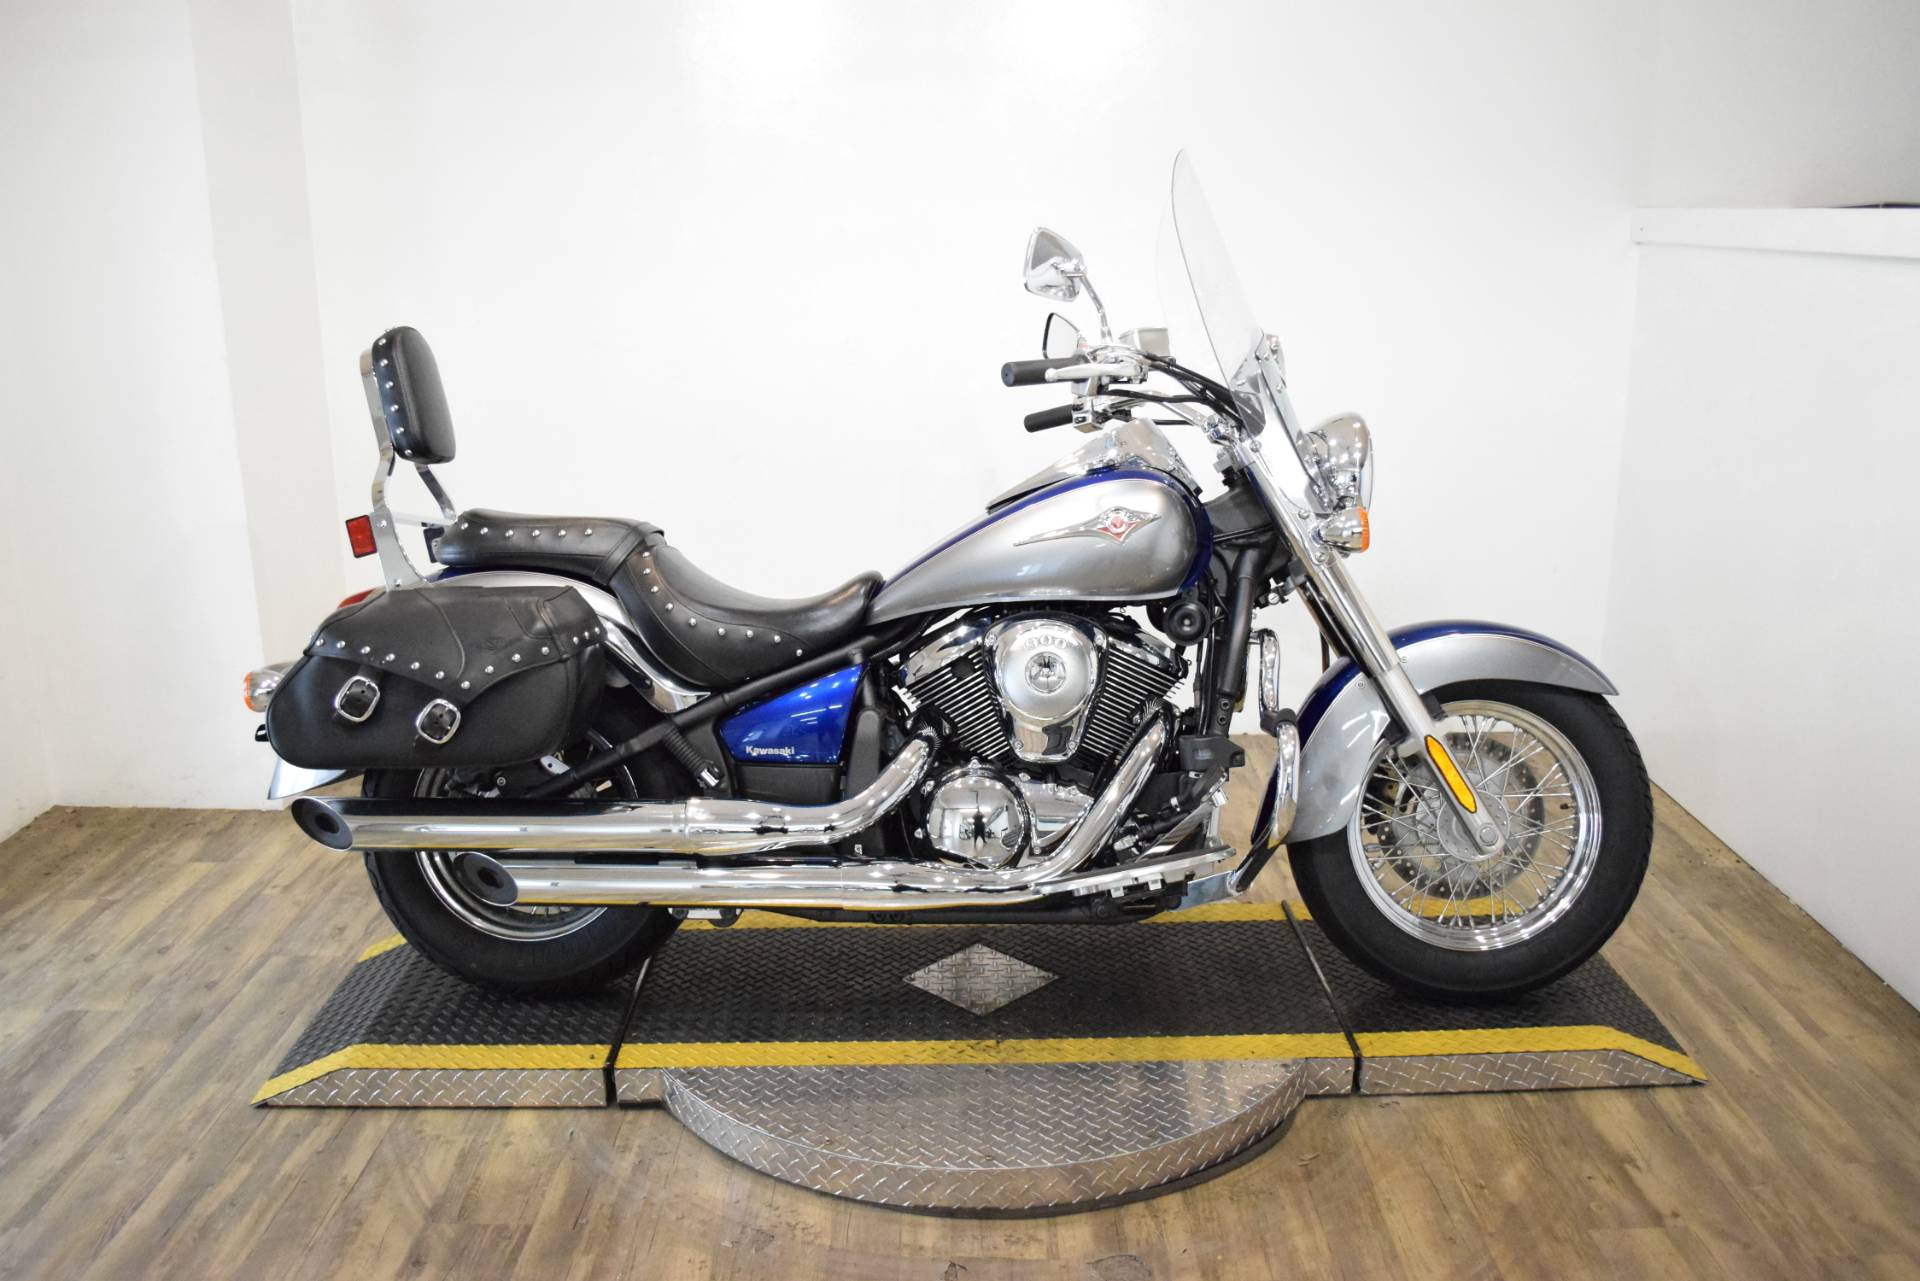 2010 Kawasaki Vulcan® 900 Classic LT in Wauconda, Illinois - Photo 1